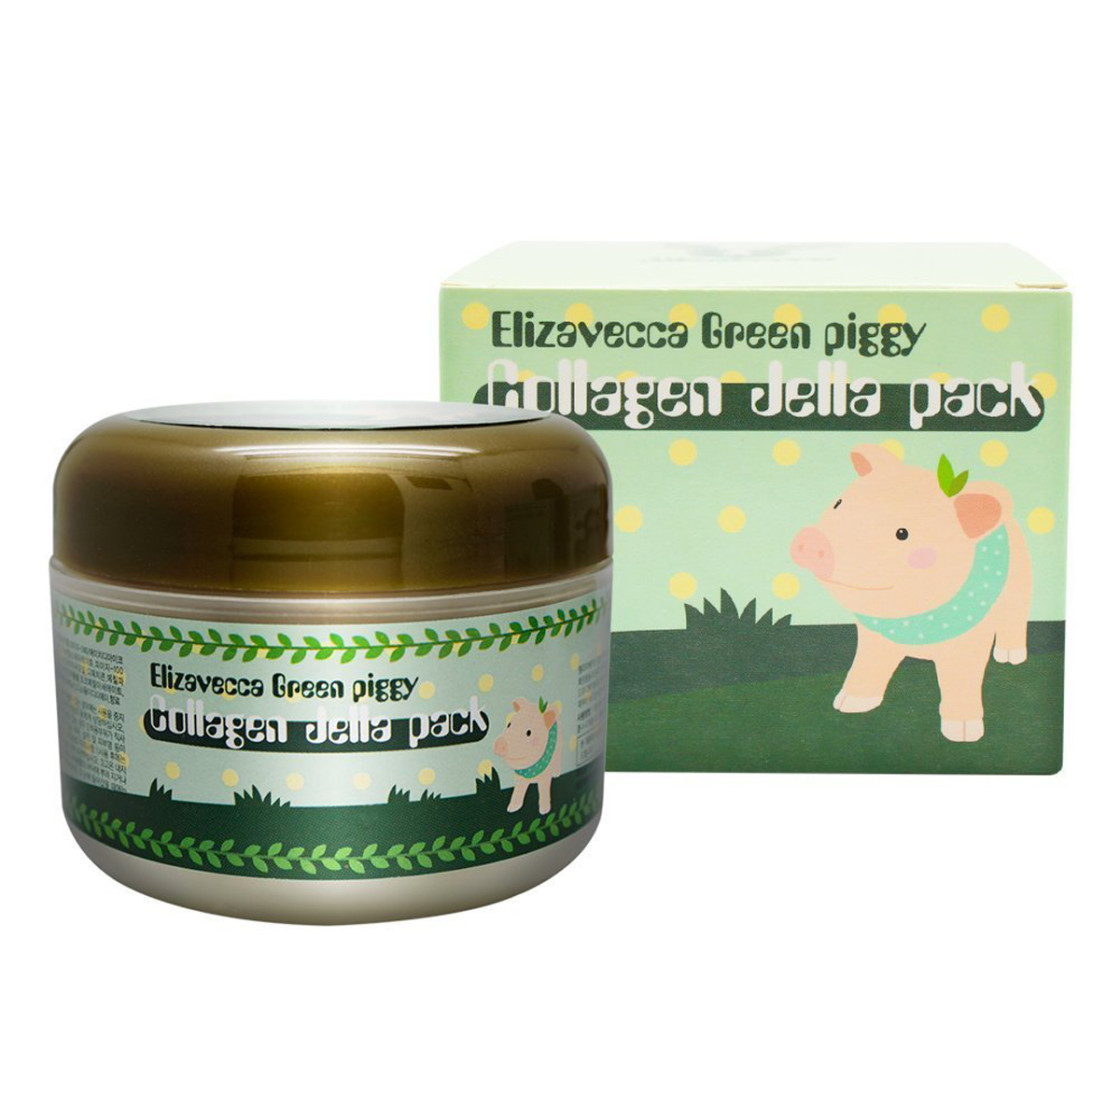 Elizavecca Маска для лица желейная с коллагеном ЛИФТИНГ Green Piggy Collagen Jella Pack, 100 мл